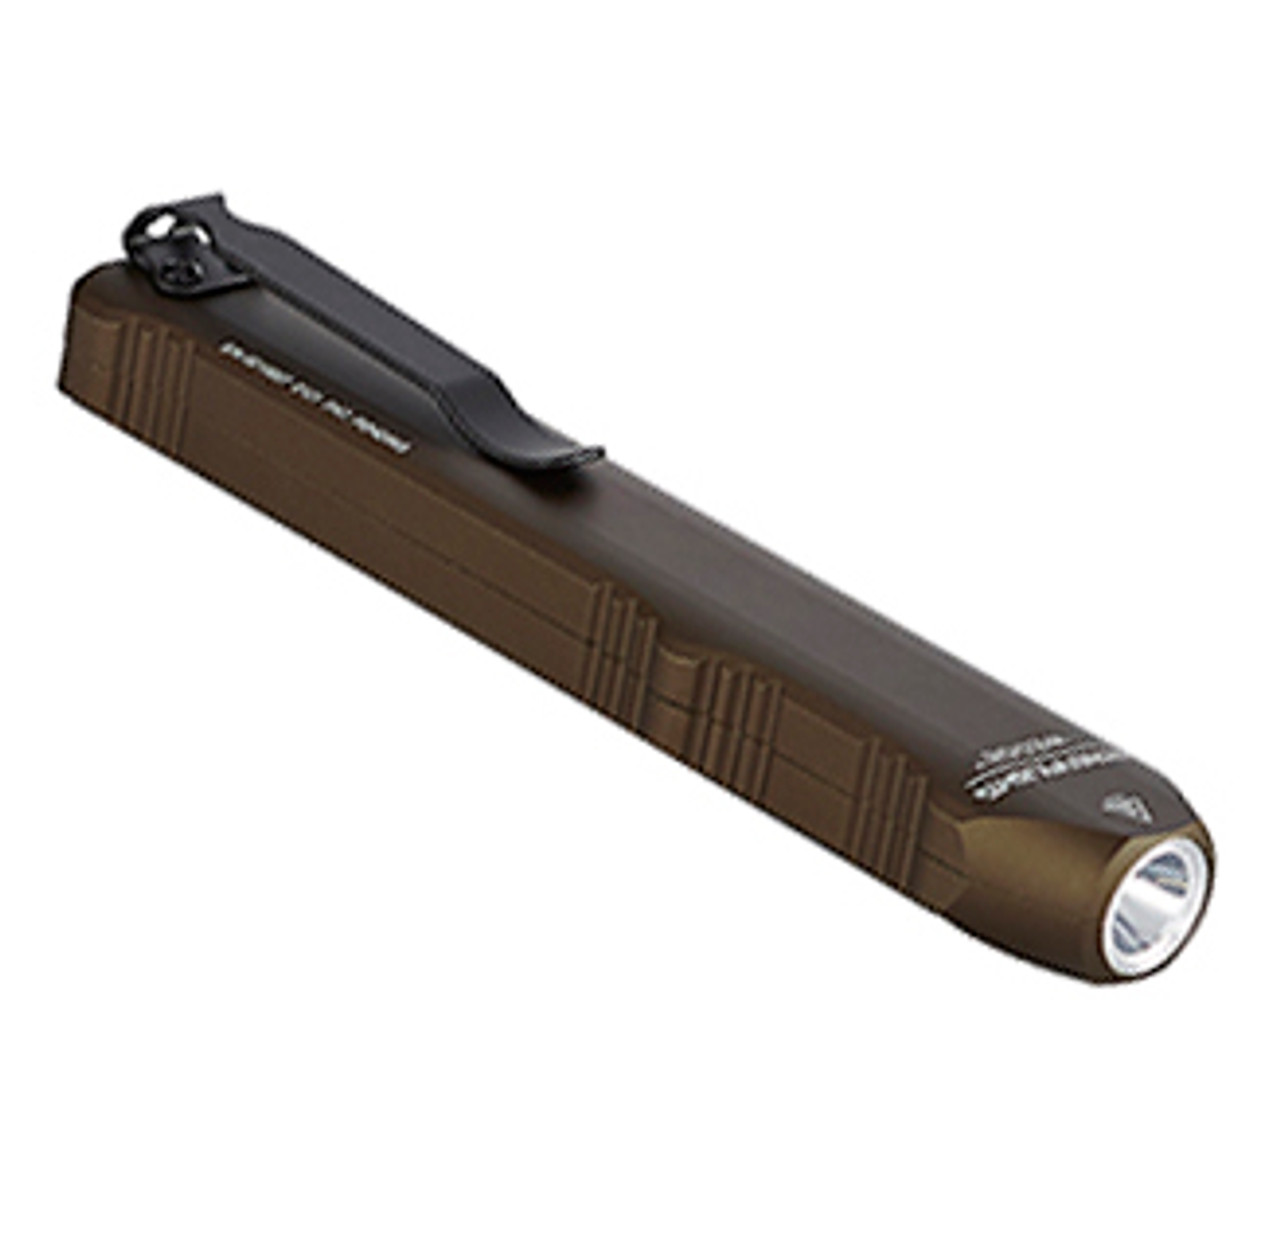 Streamlight Wedge 88811 Coyote Rechargeable Slim Everyday Carry Flashlight, 1000 Lumens